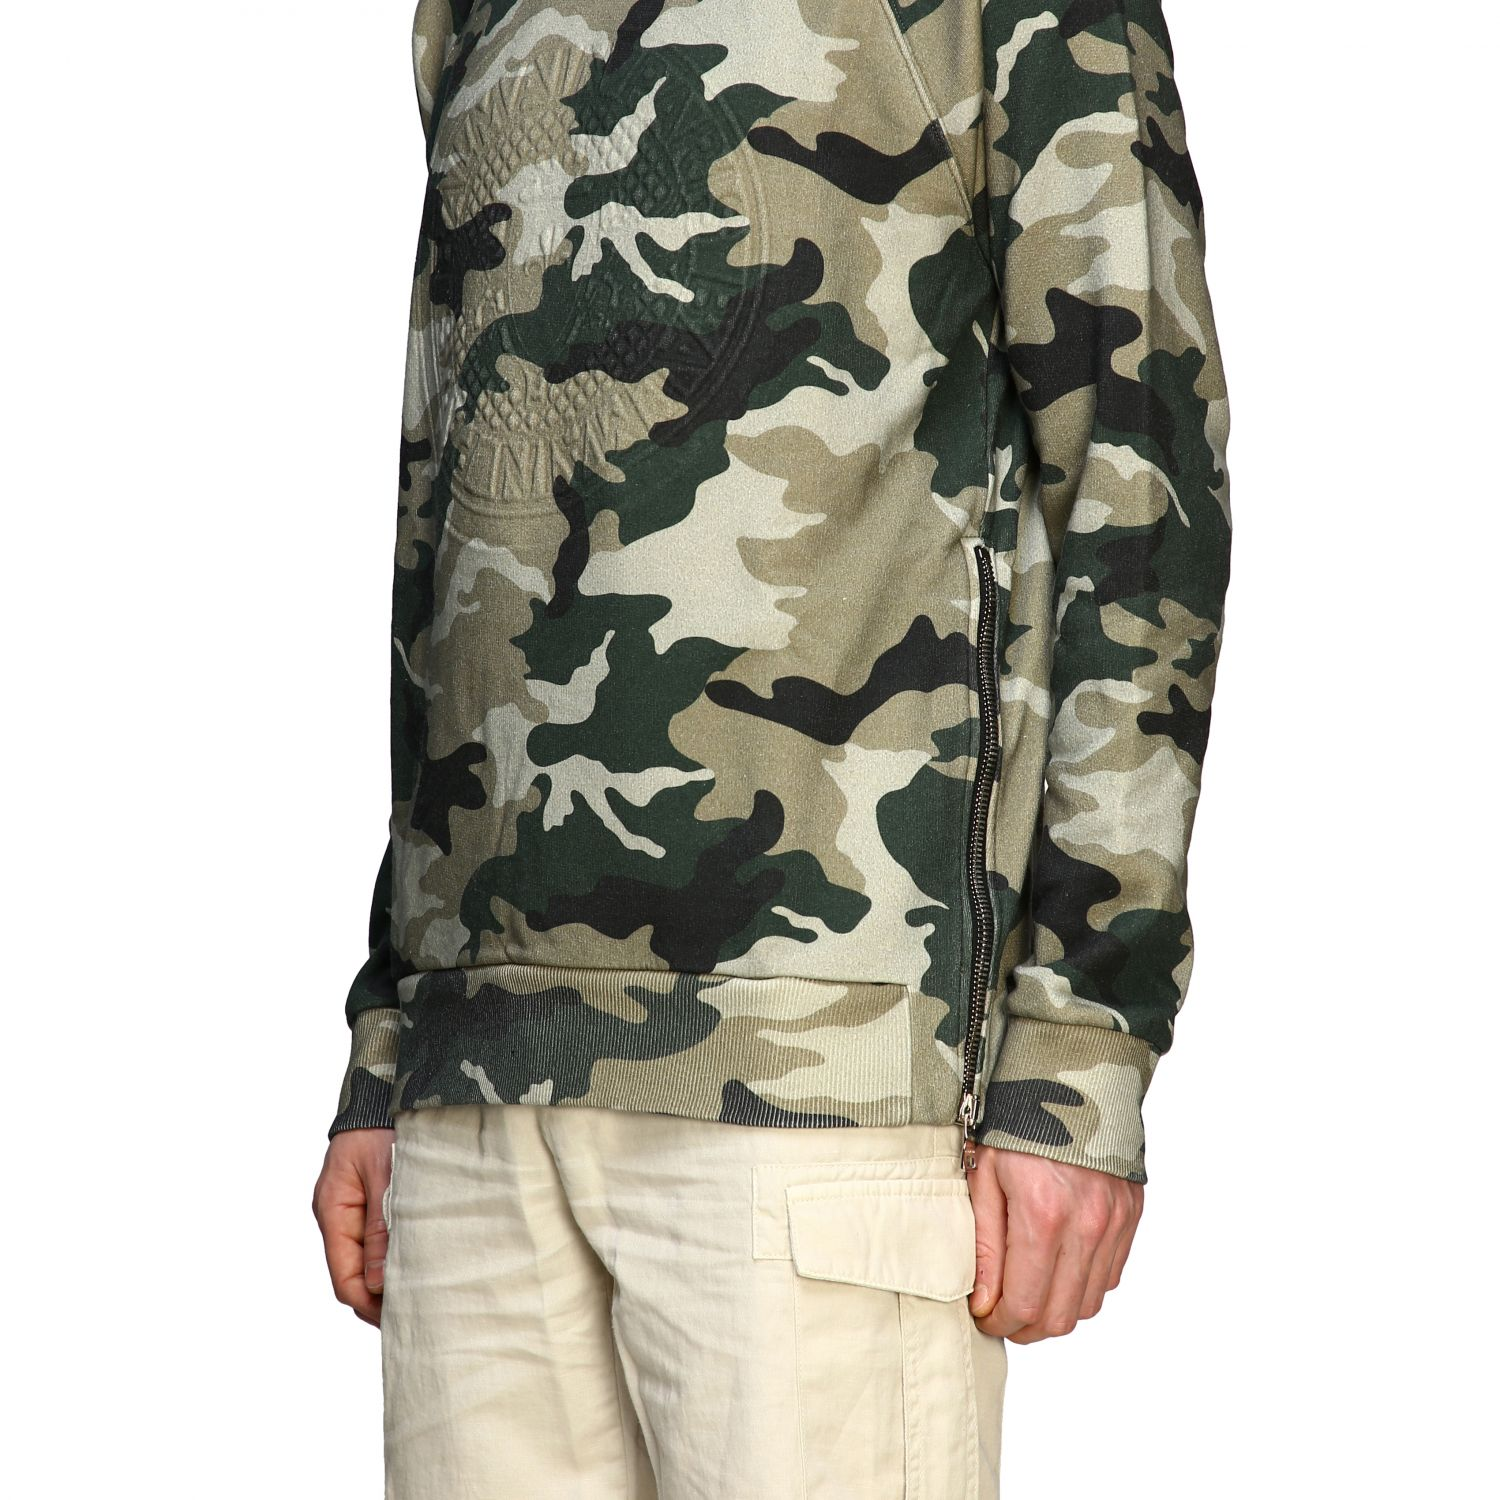 Sweatshirt Balmain: Balmain camouflage sweatshirt with flocked logo and zip military 5